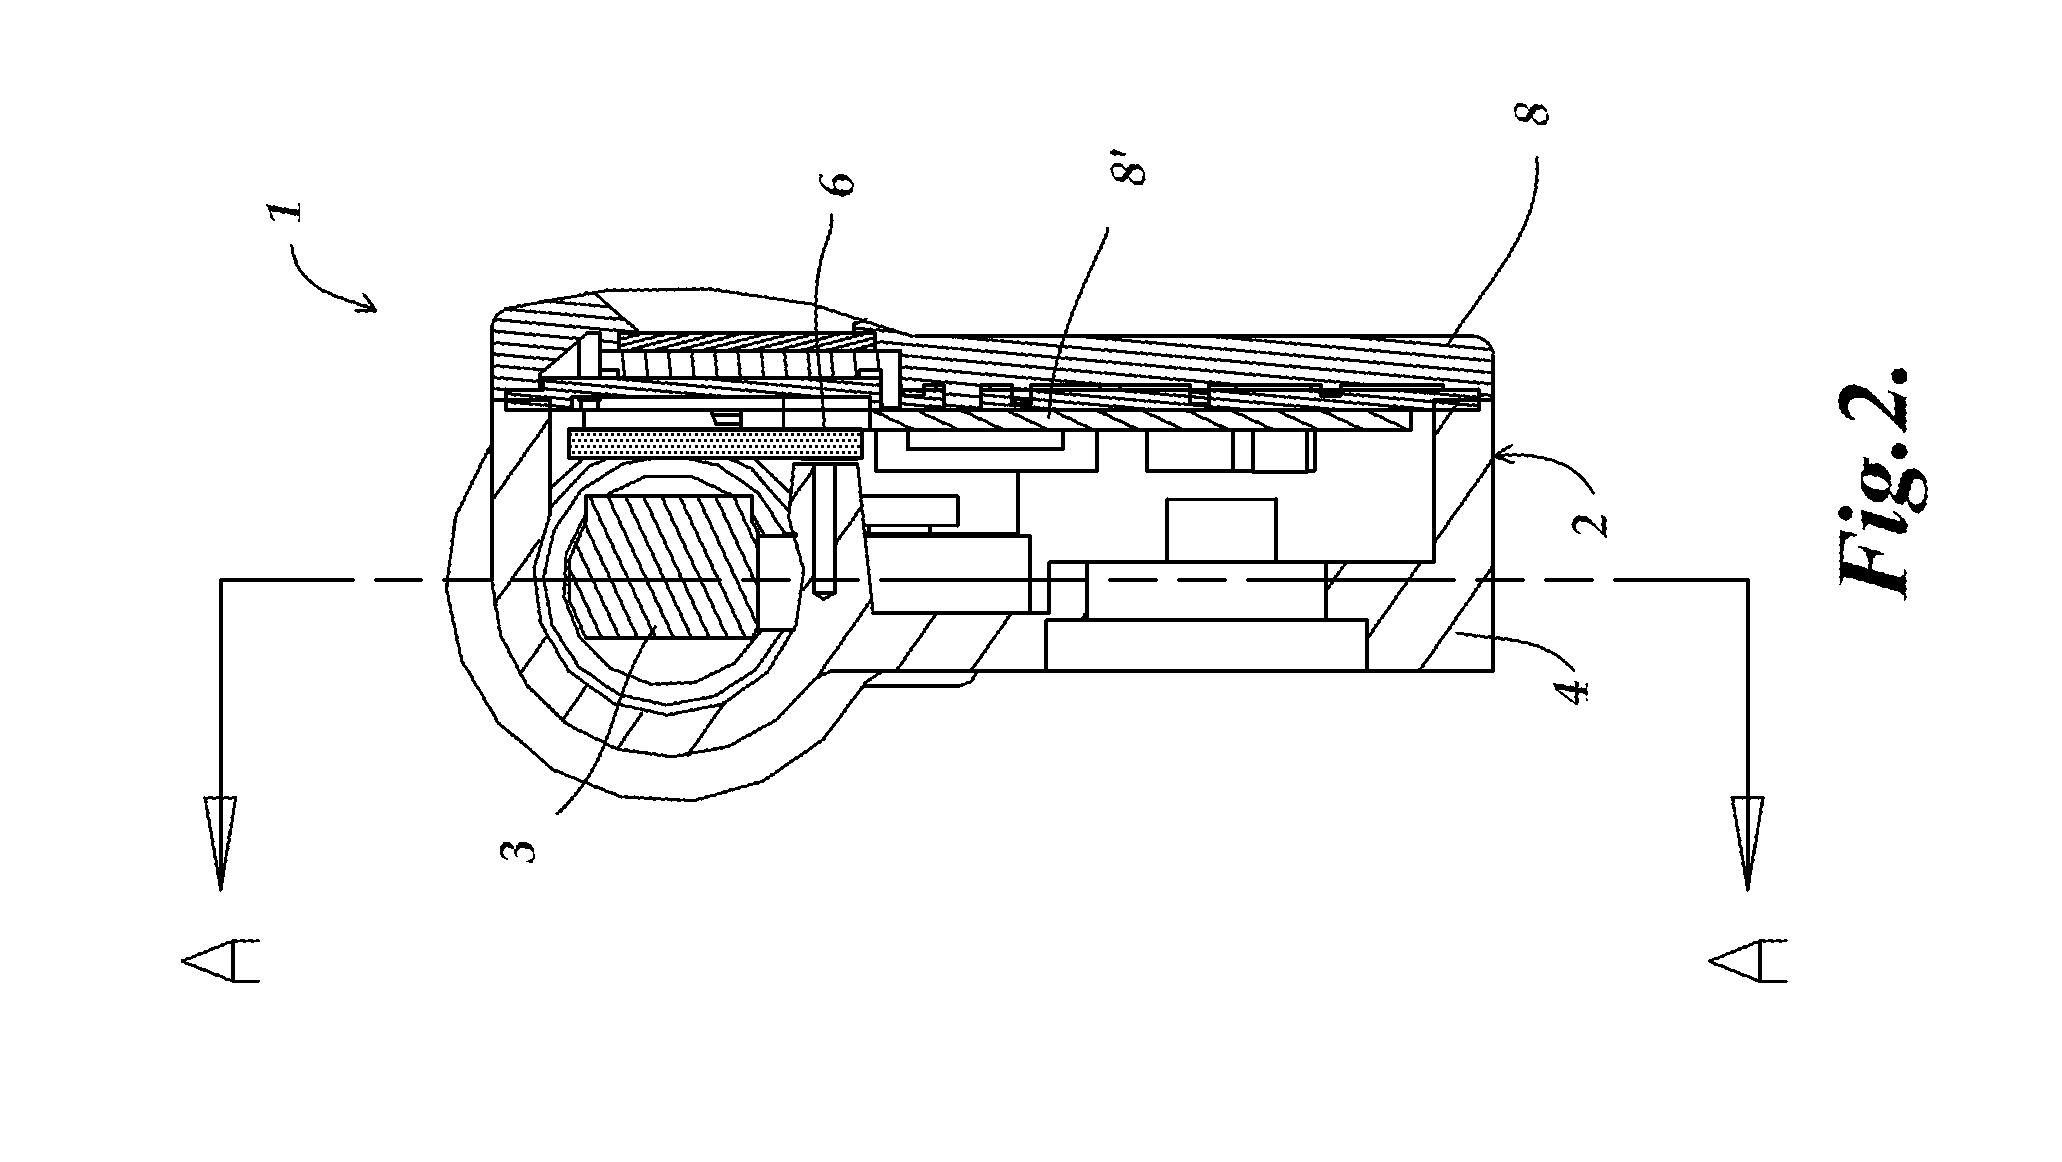 Patent Us8739428 Constant Force Spring Actuator For A Handheld Crf 450 Wiring Diagram Drawing